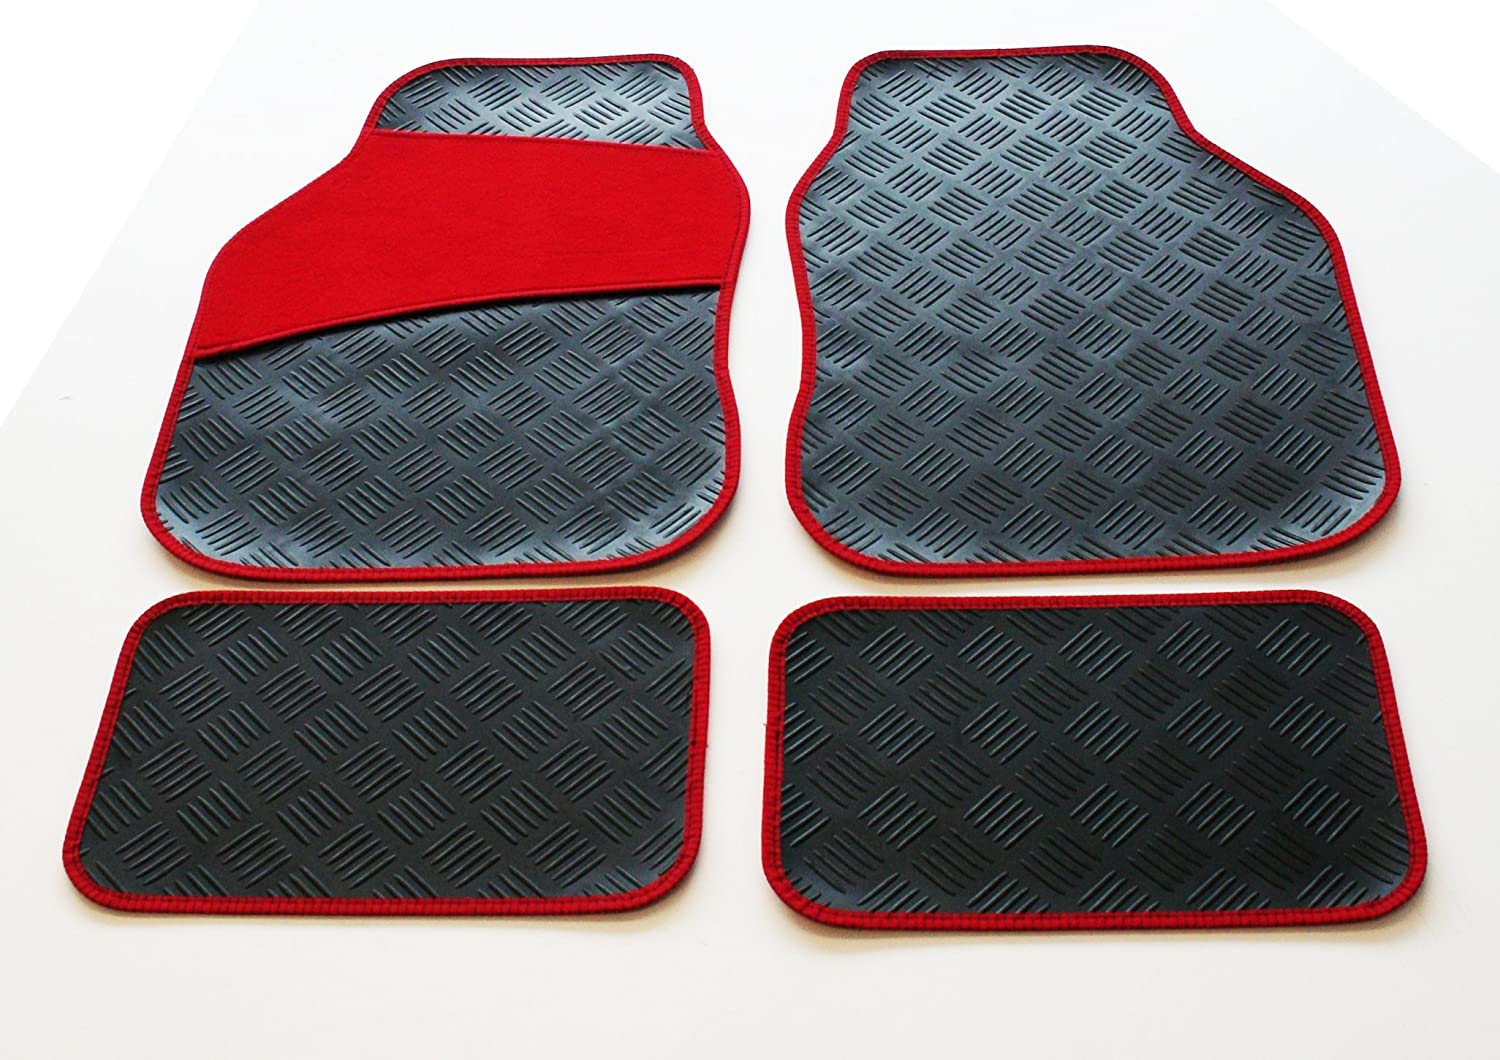 Rubber Mat Set with Red Carpet Heel Pad